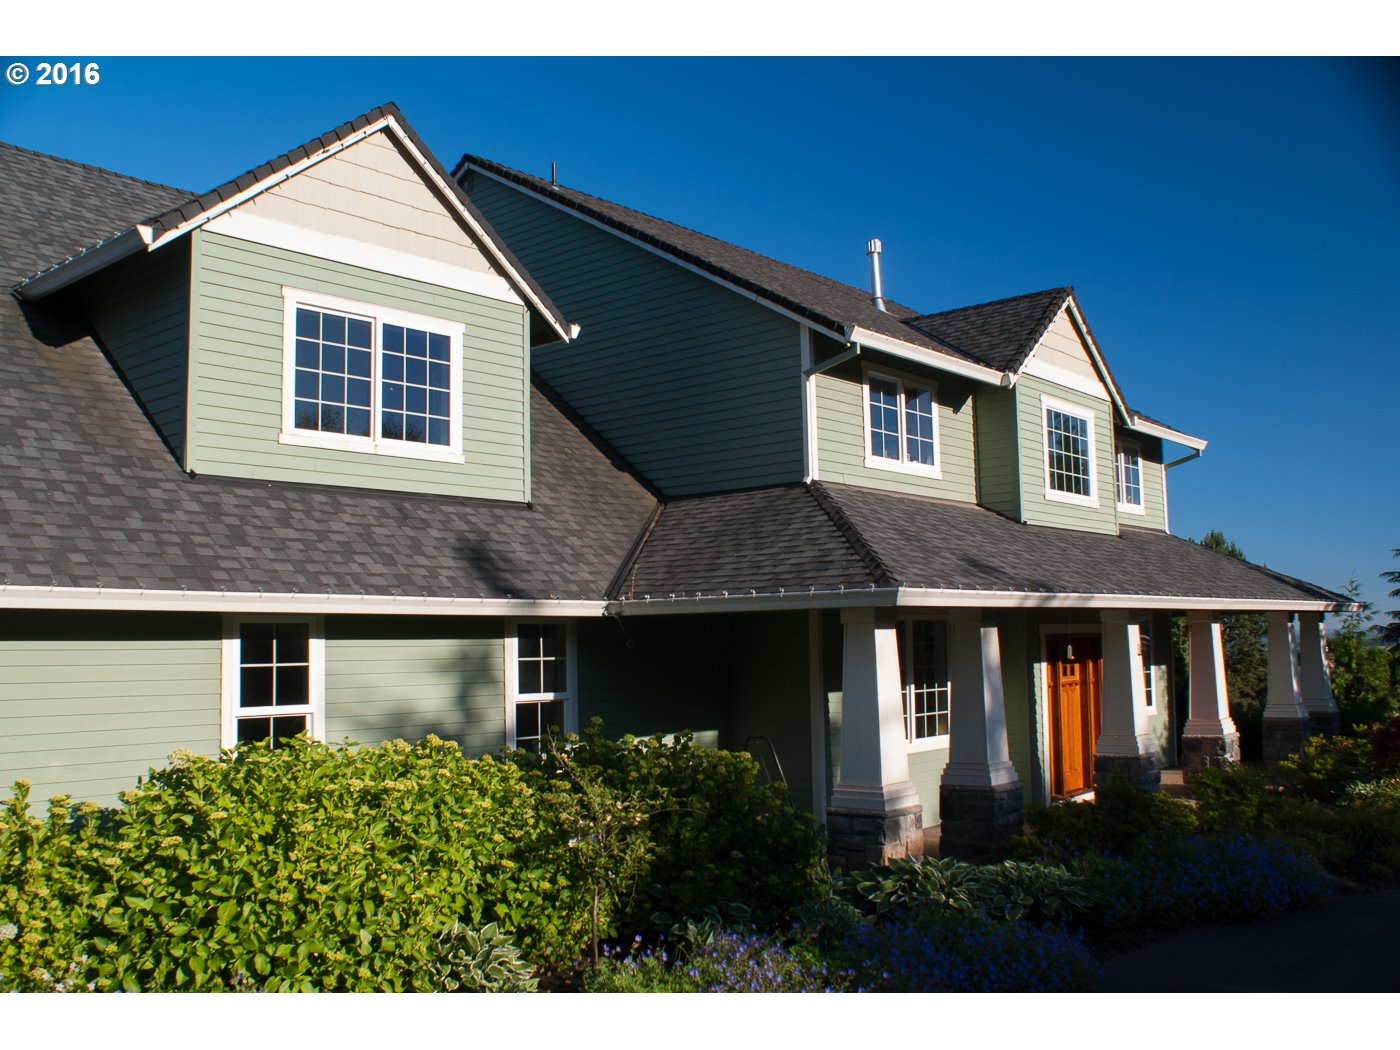 331 NW Alder St Dundee, OR 97115